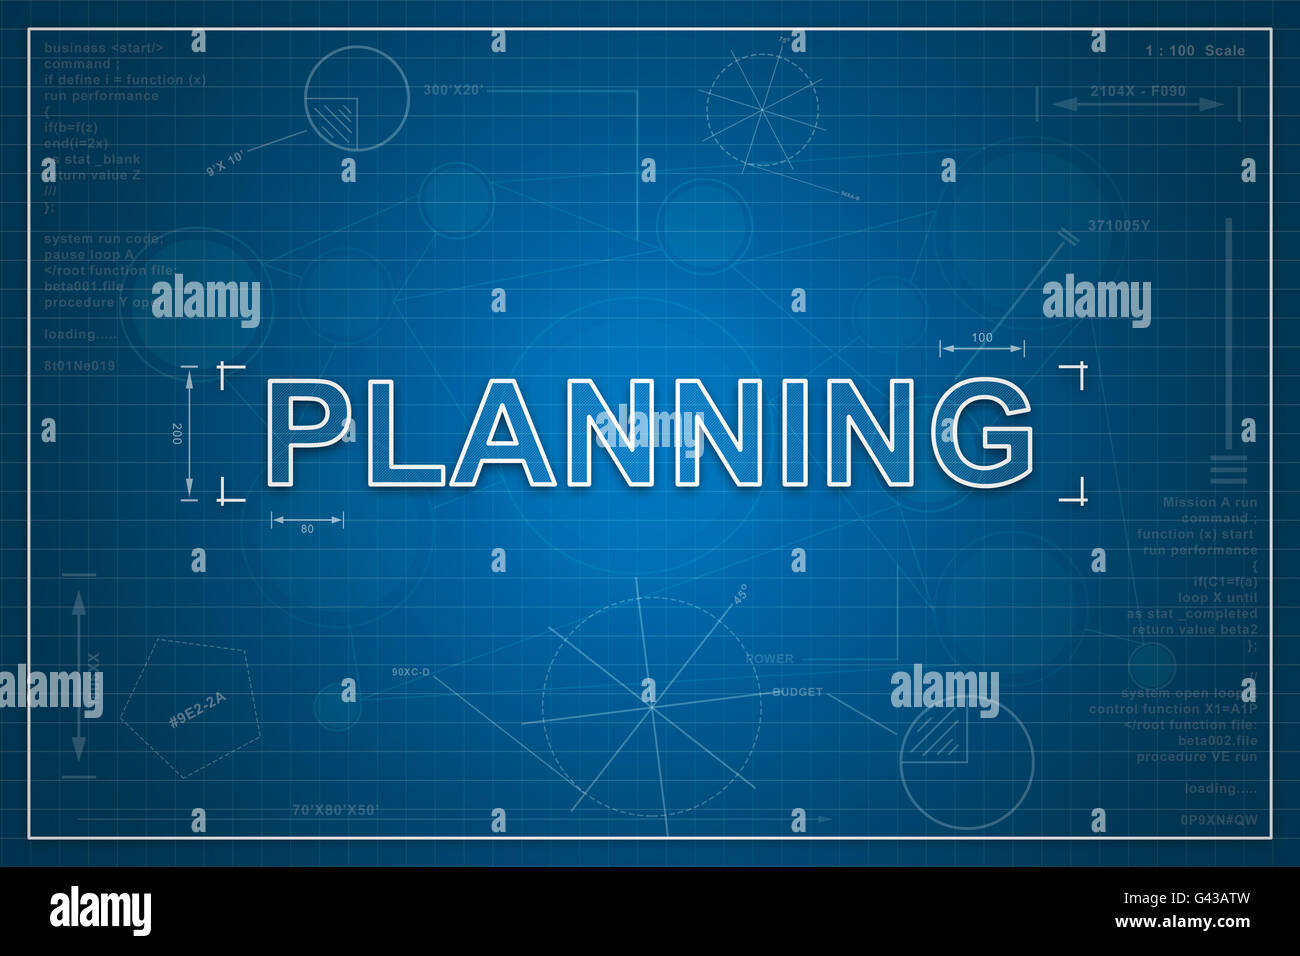 Planning on paper blueprint background business concept stock photo planning on paper blueprint background business concept malvernweather Image collections